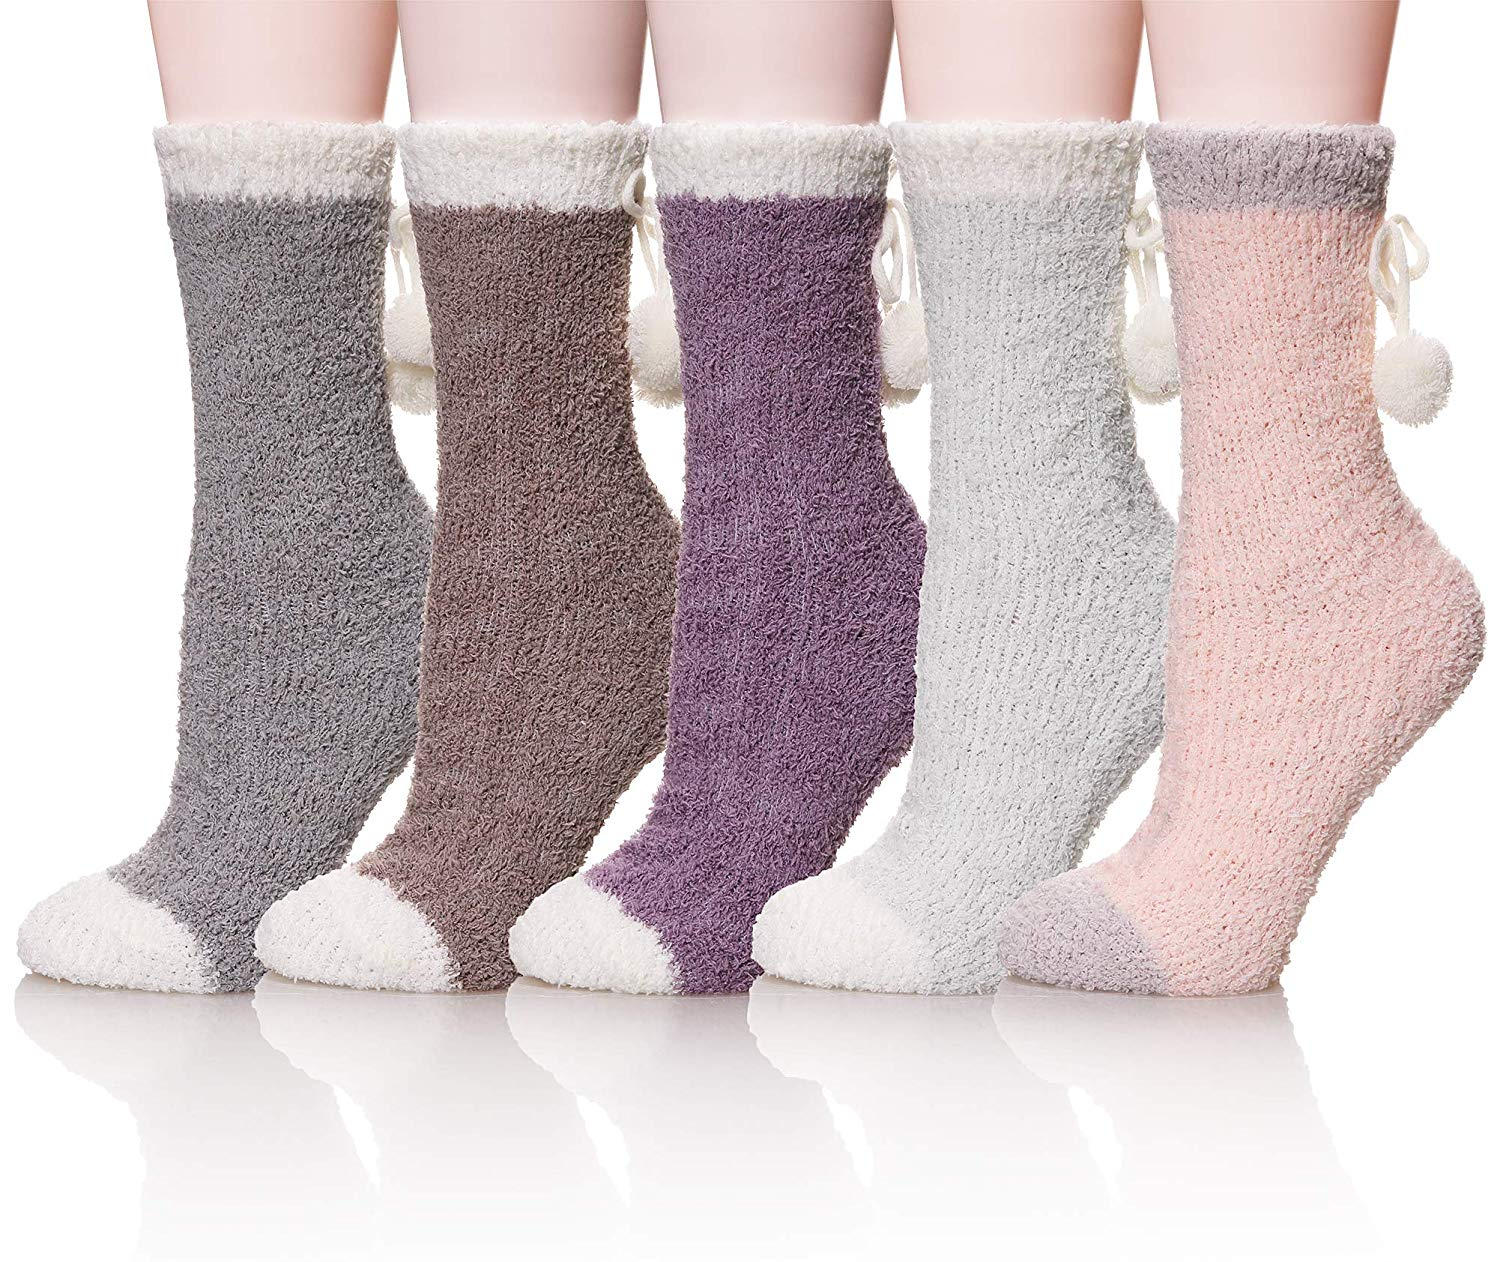 8fed6f8ac Get Quotations · Velice Womens Soft Warm Fuzzy Slipper Socks Fluffy Cute  Cozy Winter Christmas Home Socks 5 Pairs